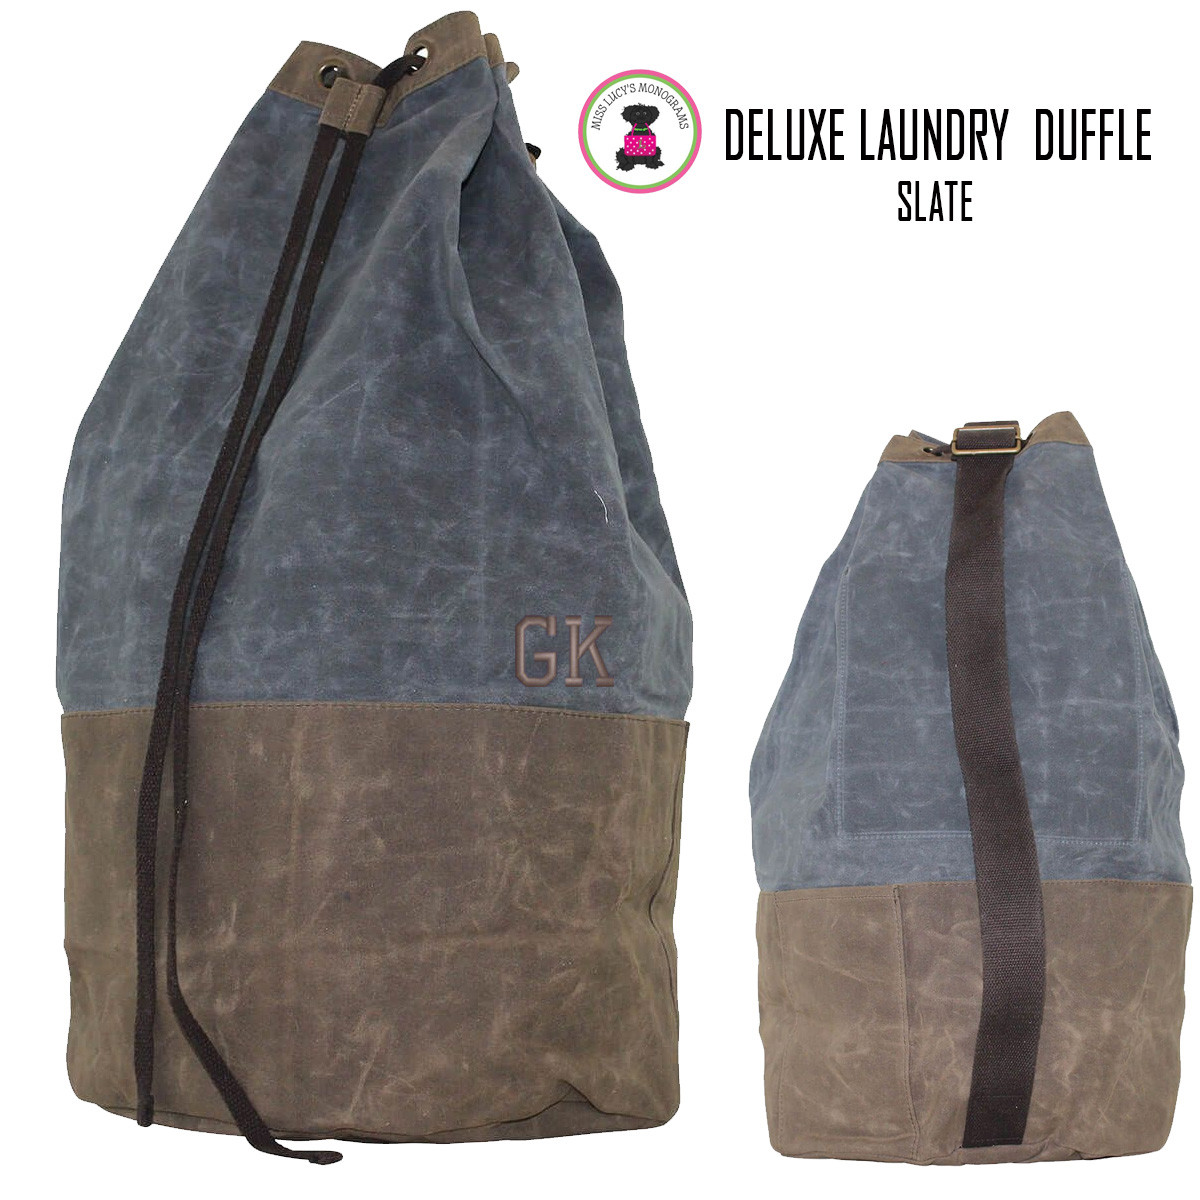 1f53270314fb ... Monogrammed Waxed Canvas Deluxe Laundry Duffel - Slate - FREE SHIP-Groomsmen  Gift Father s Day Gift Grad Gift Gift for Him Group Discount. Image 1